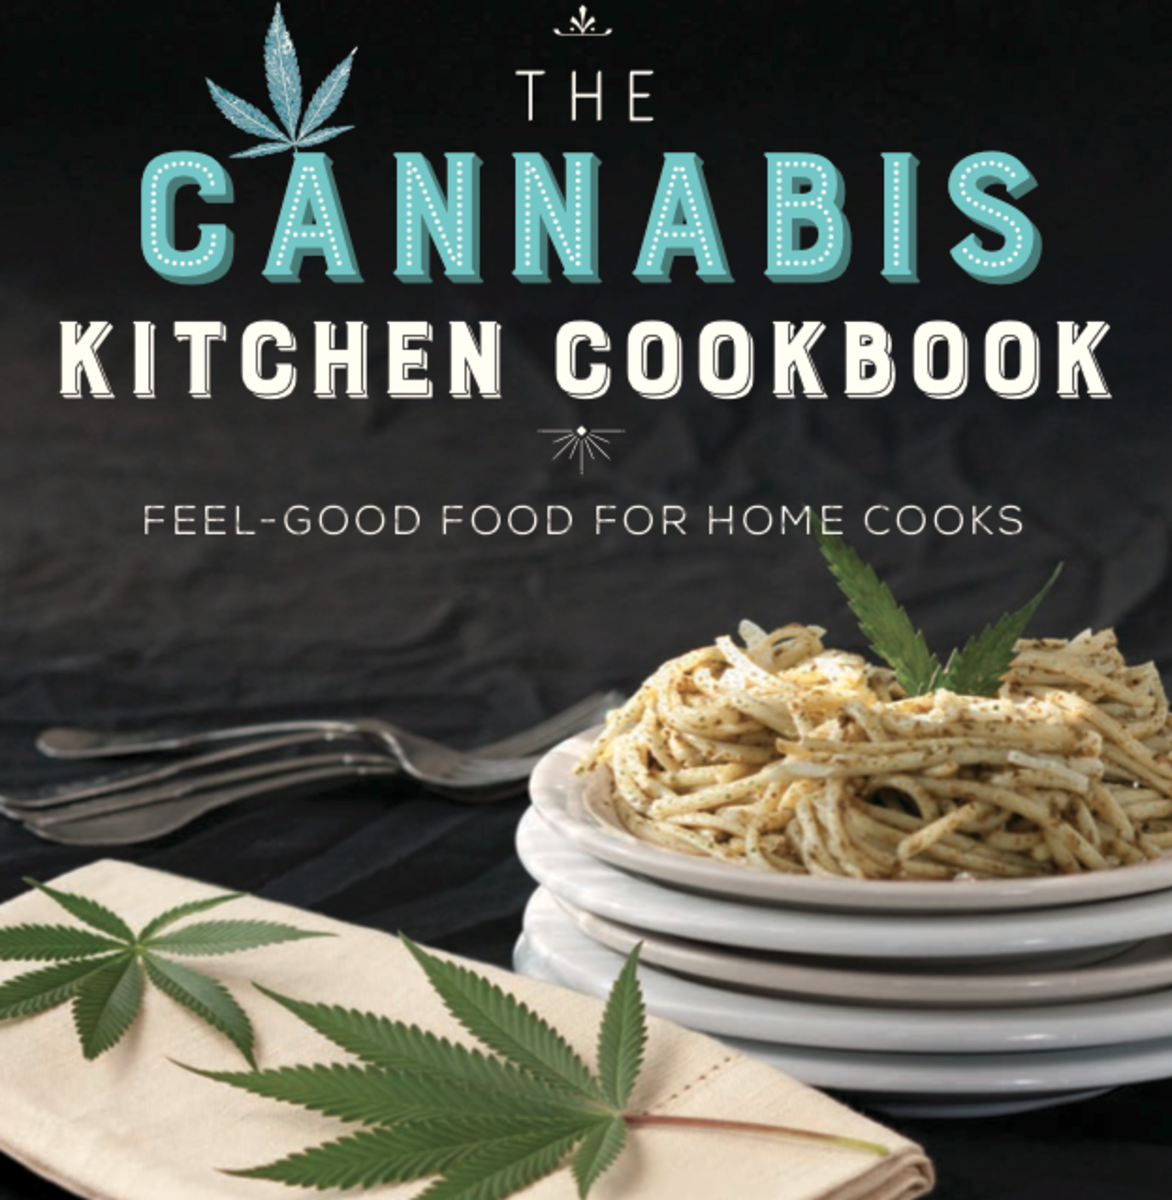 The Cannabis Kitchen Cookbook is a great read.